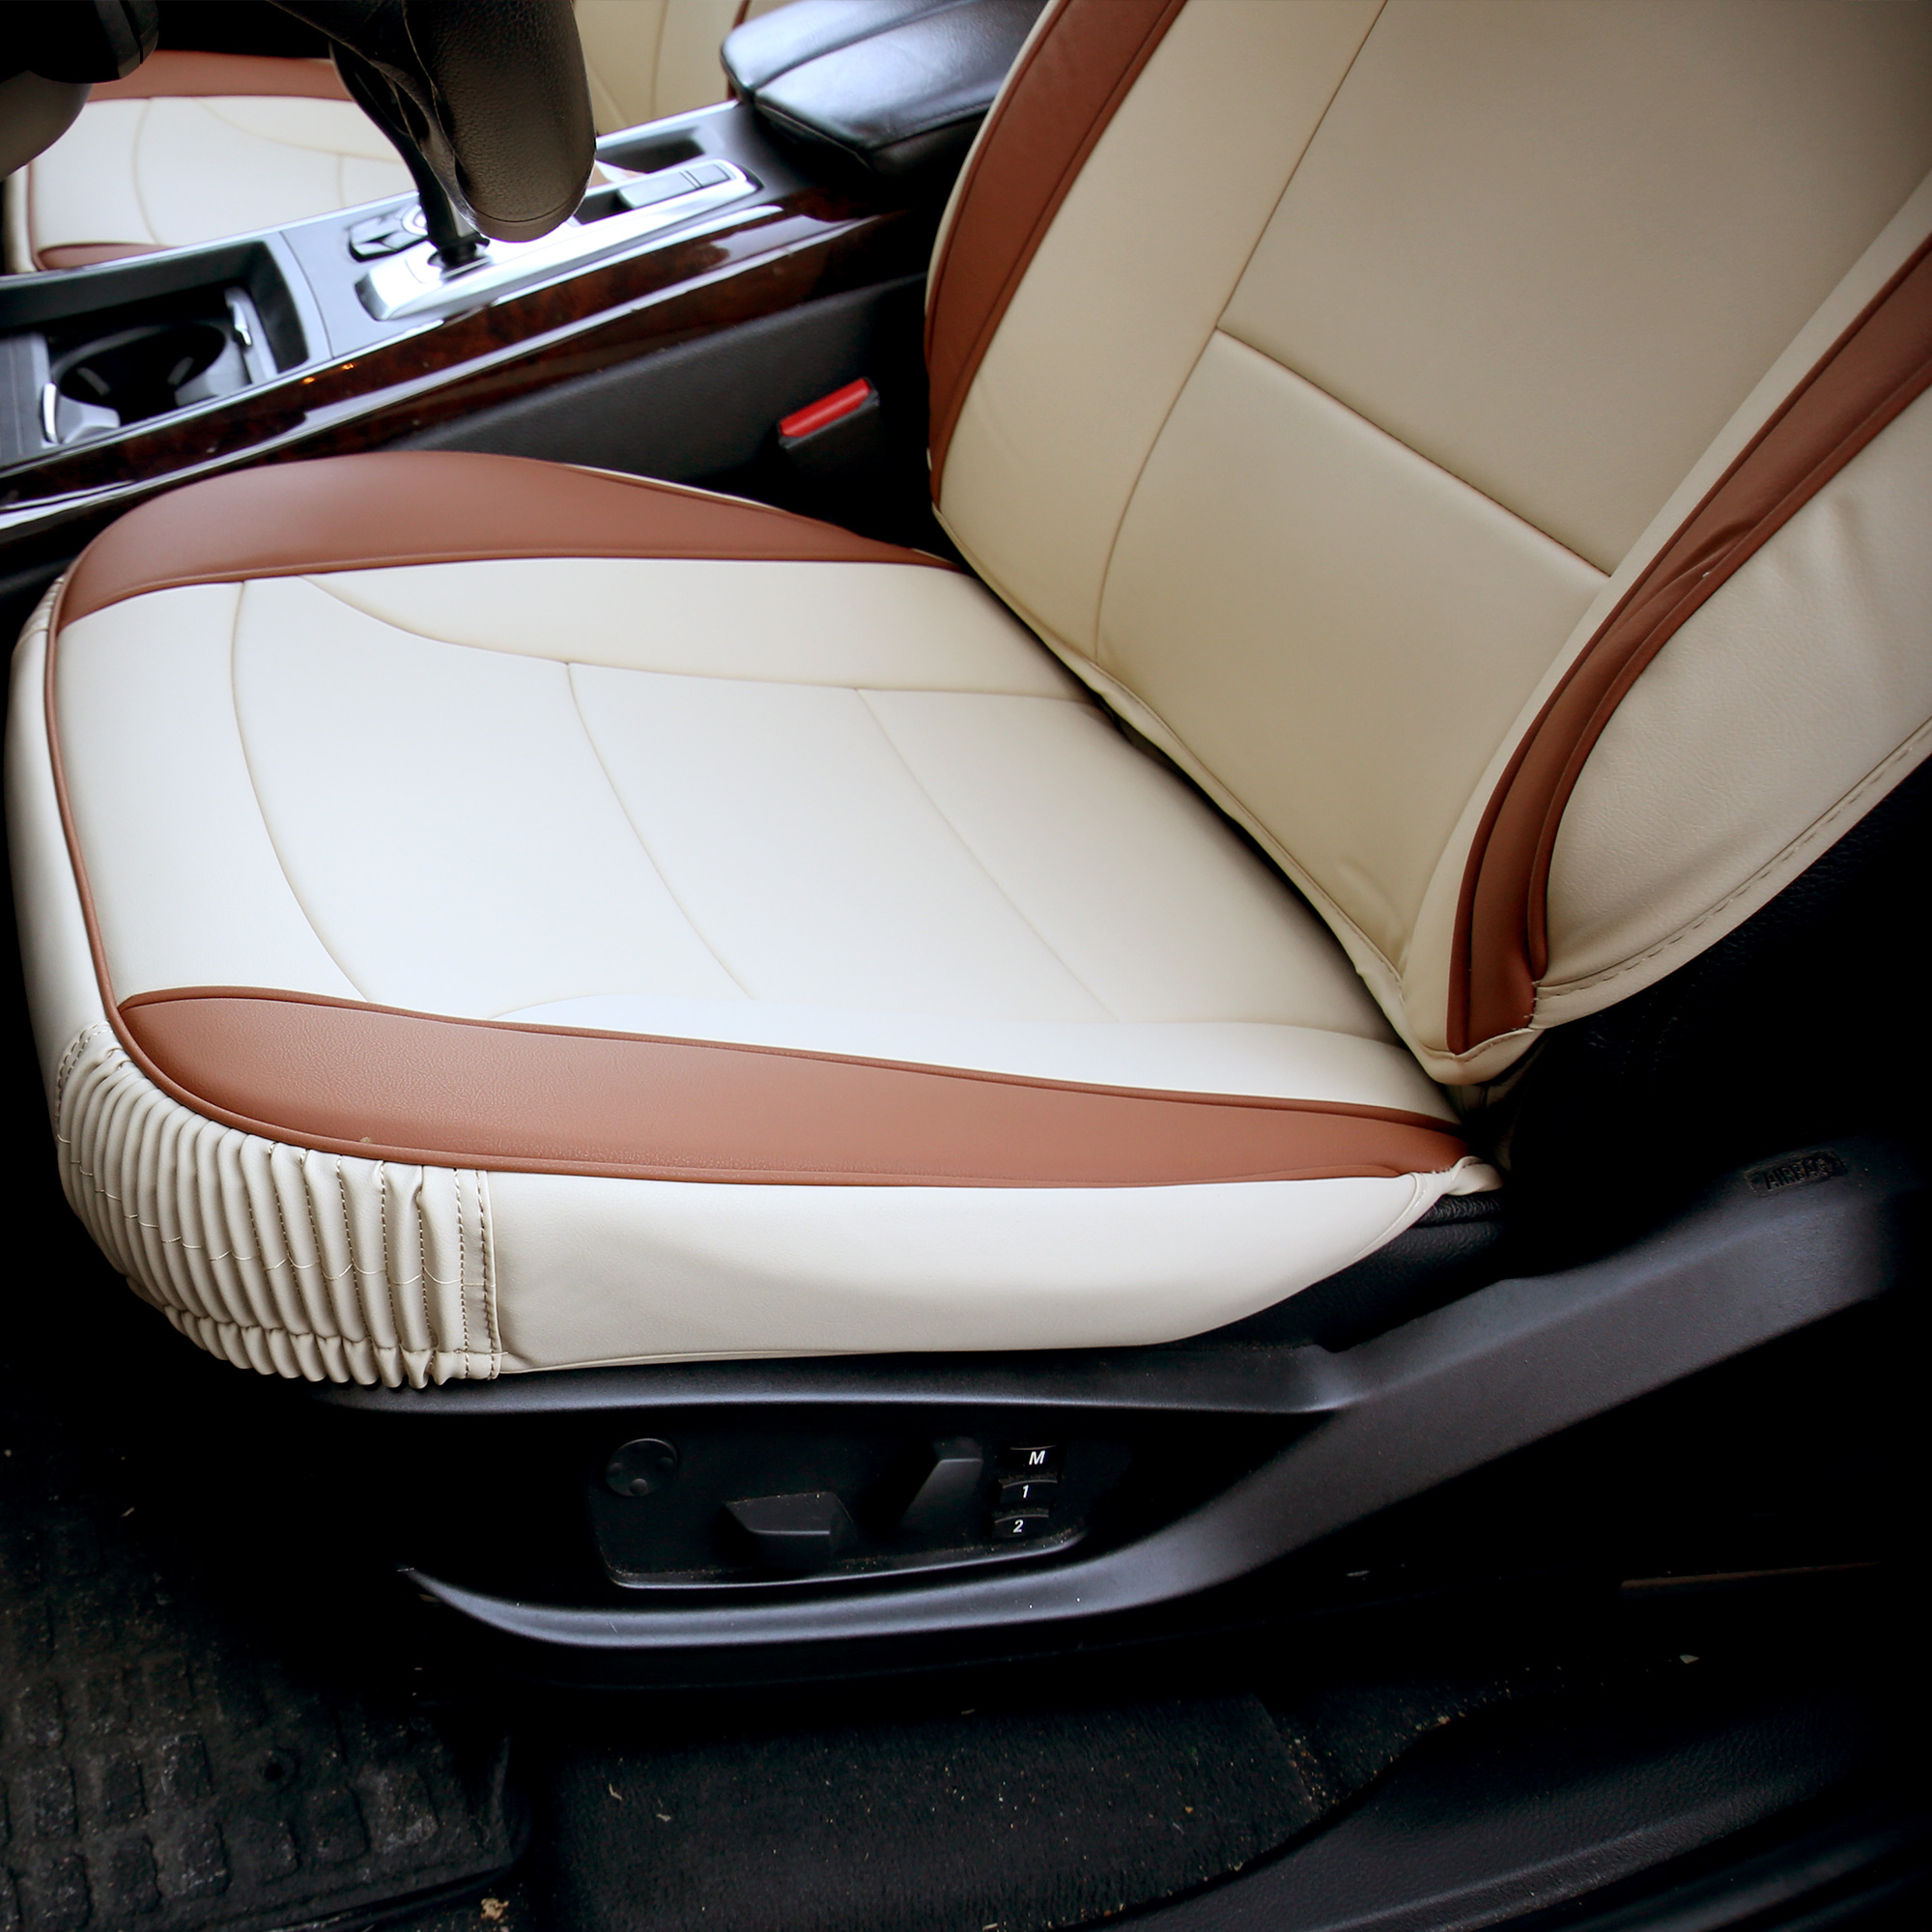 Luxury-Leather-Seat-Cushion-Covers-Front-Bucket-Pair-11-Color-Options thumbnail 5